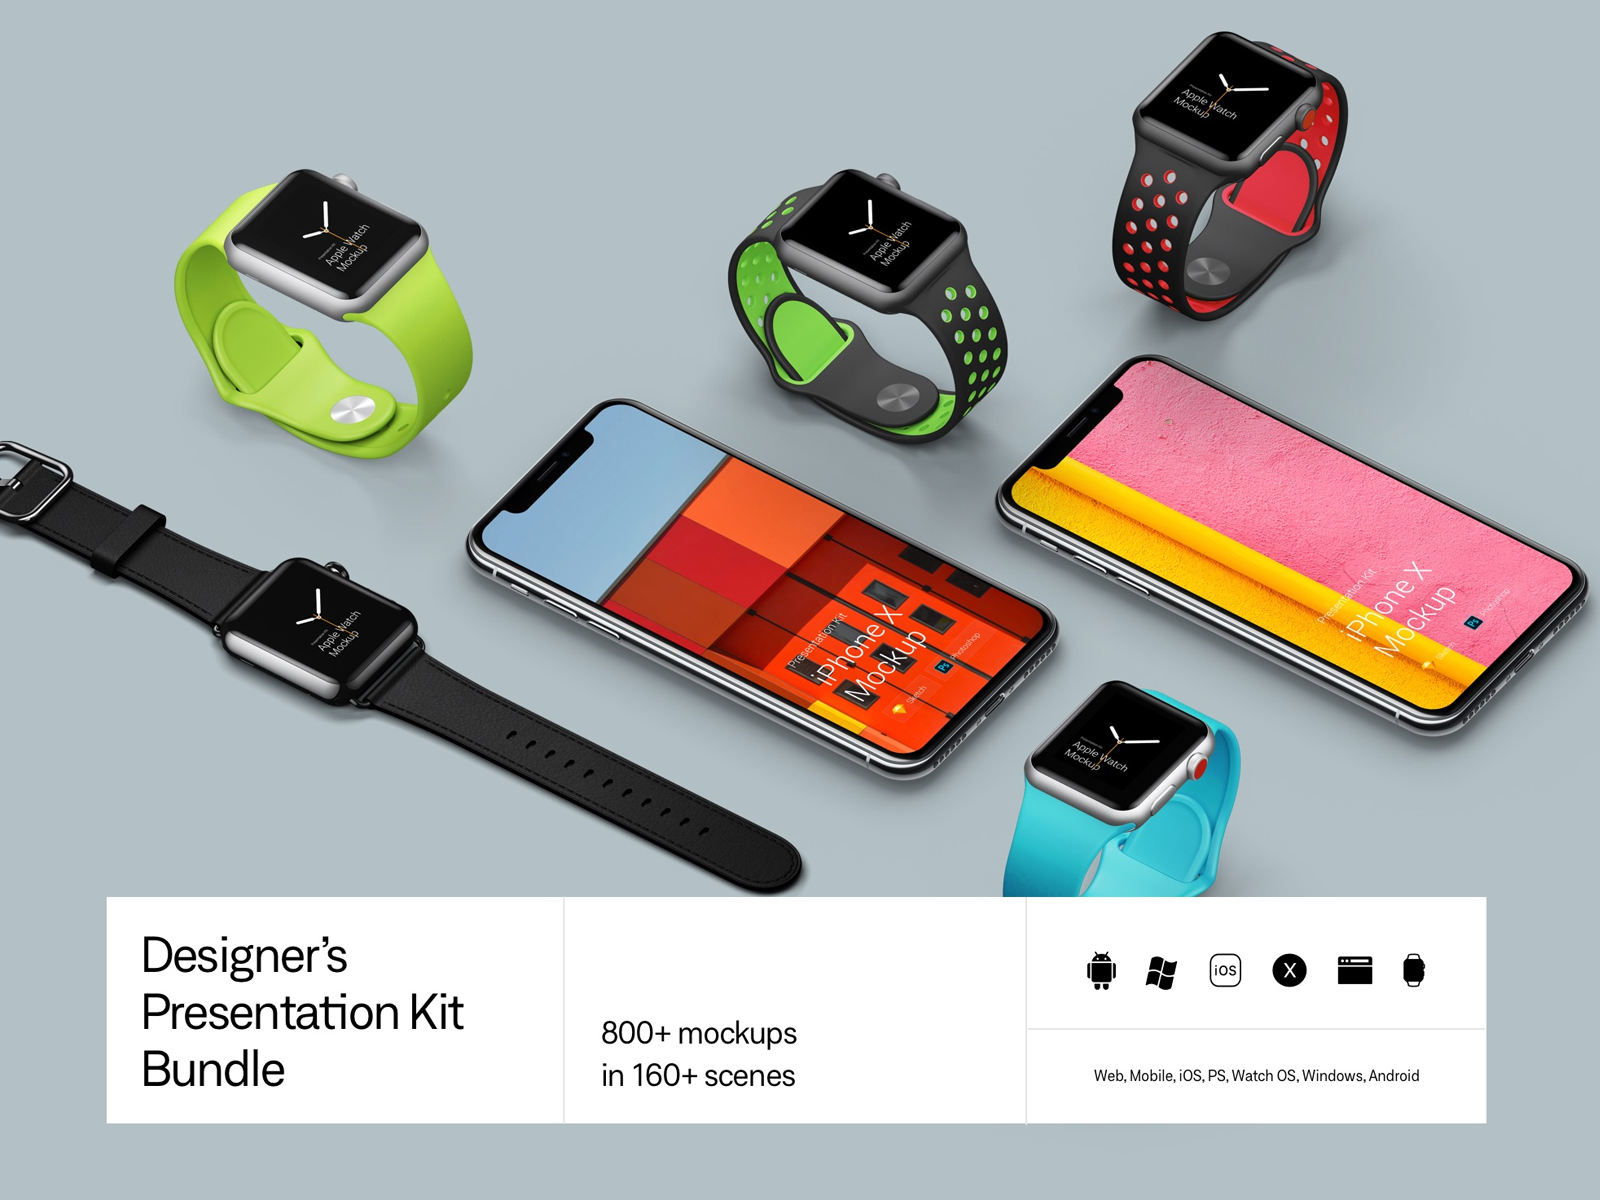 Biggest mockup pack. 980+ mockups. All types of devices. For web, mobile, iOS, Watch OS, Windows, Android